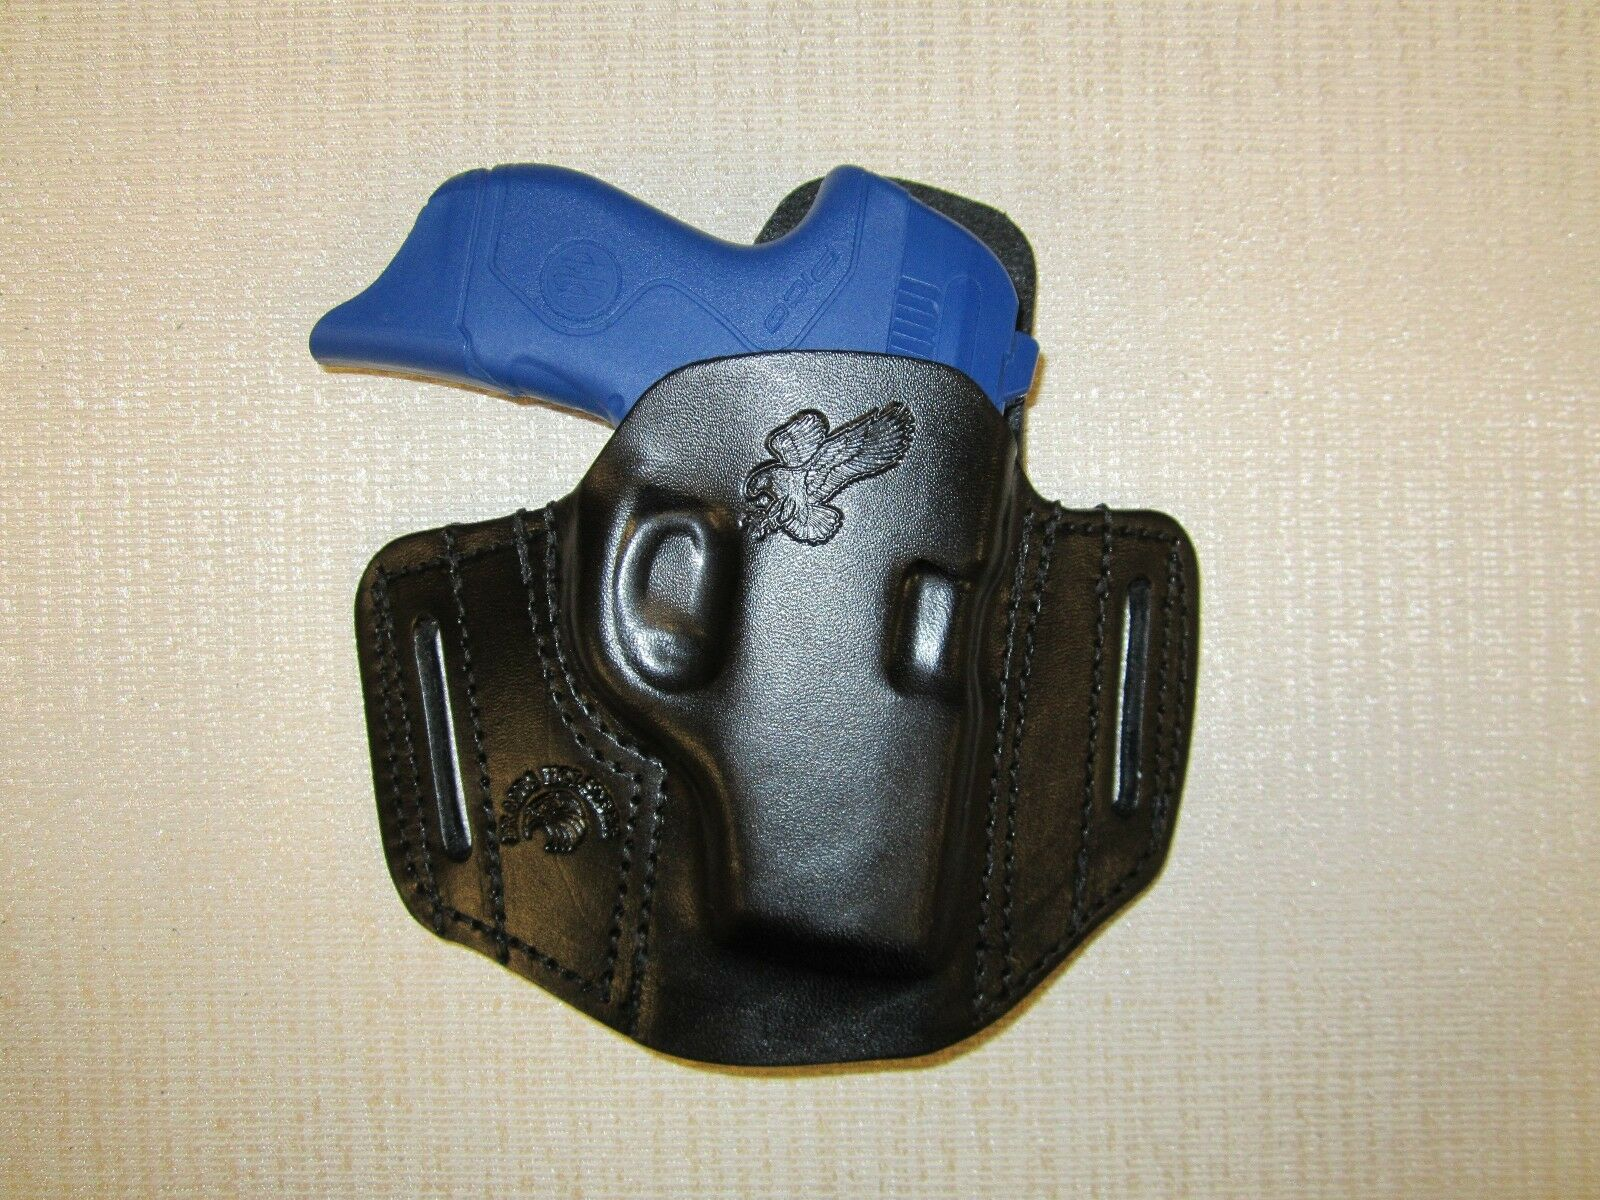 BERETTA PICO, FORMED LEATHER PANCAKE HOLSTER, OWB BELT HOLSTER, RIGHT HAND